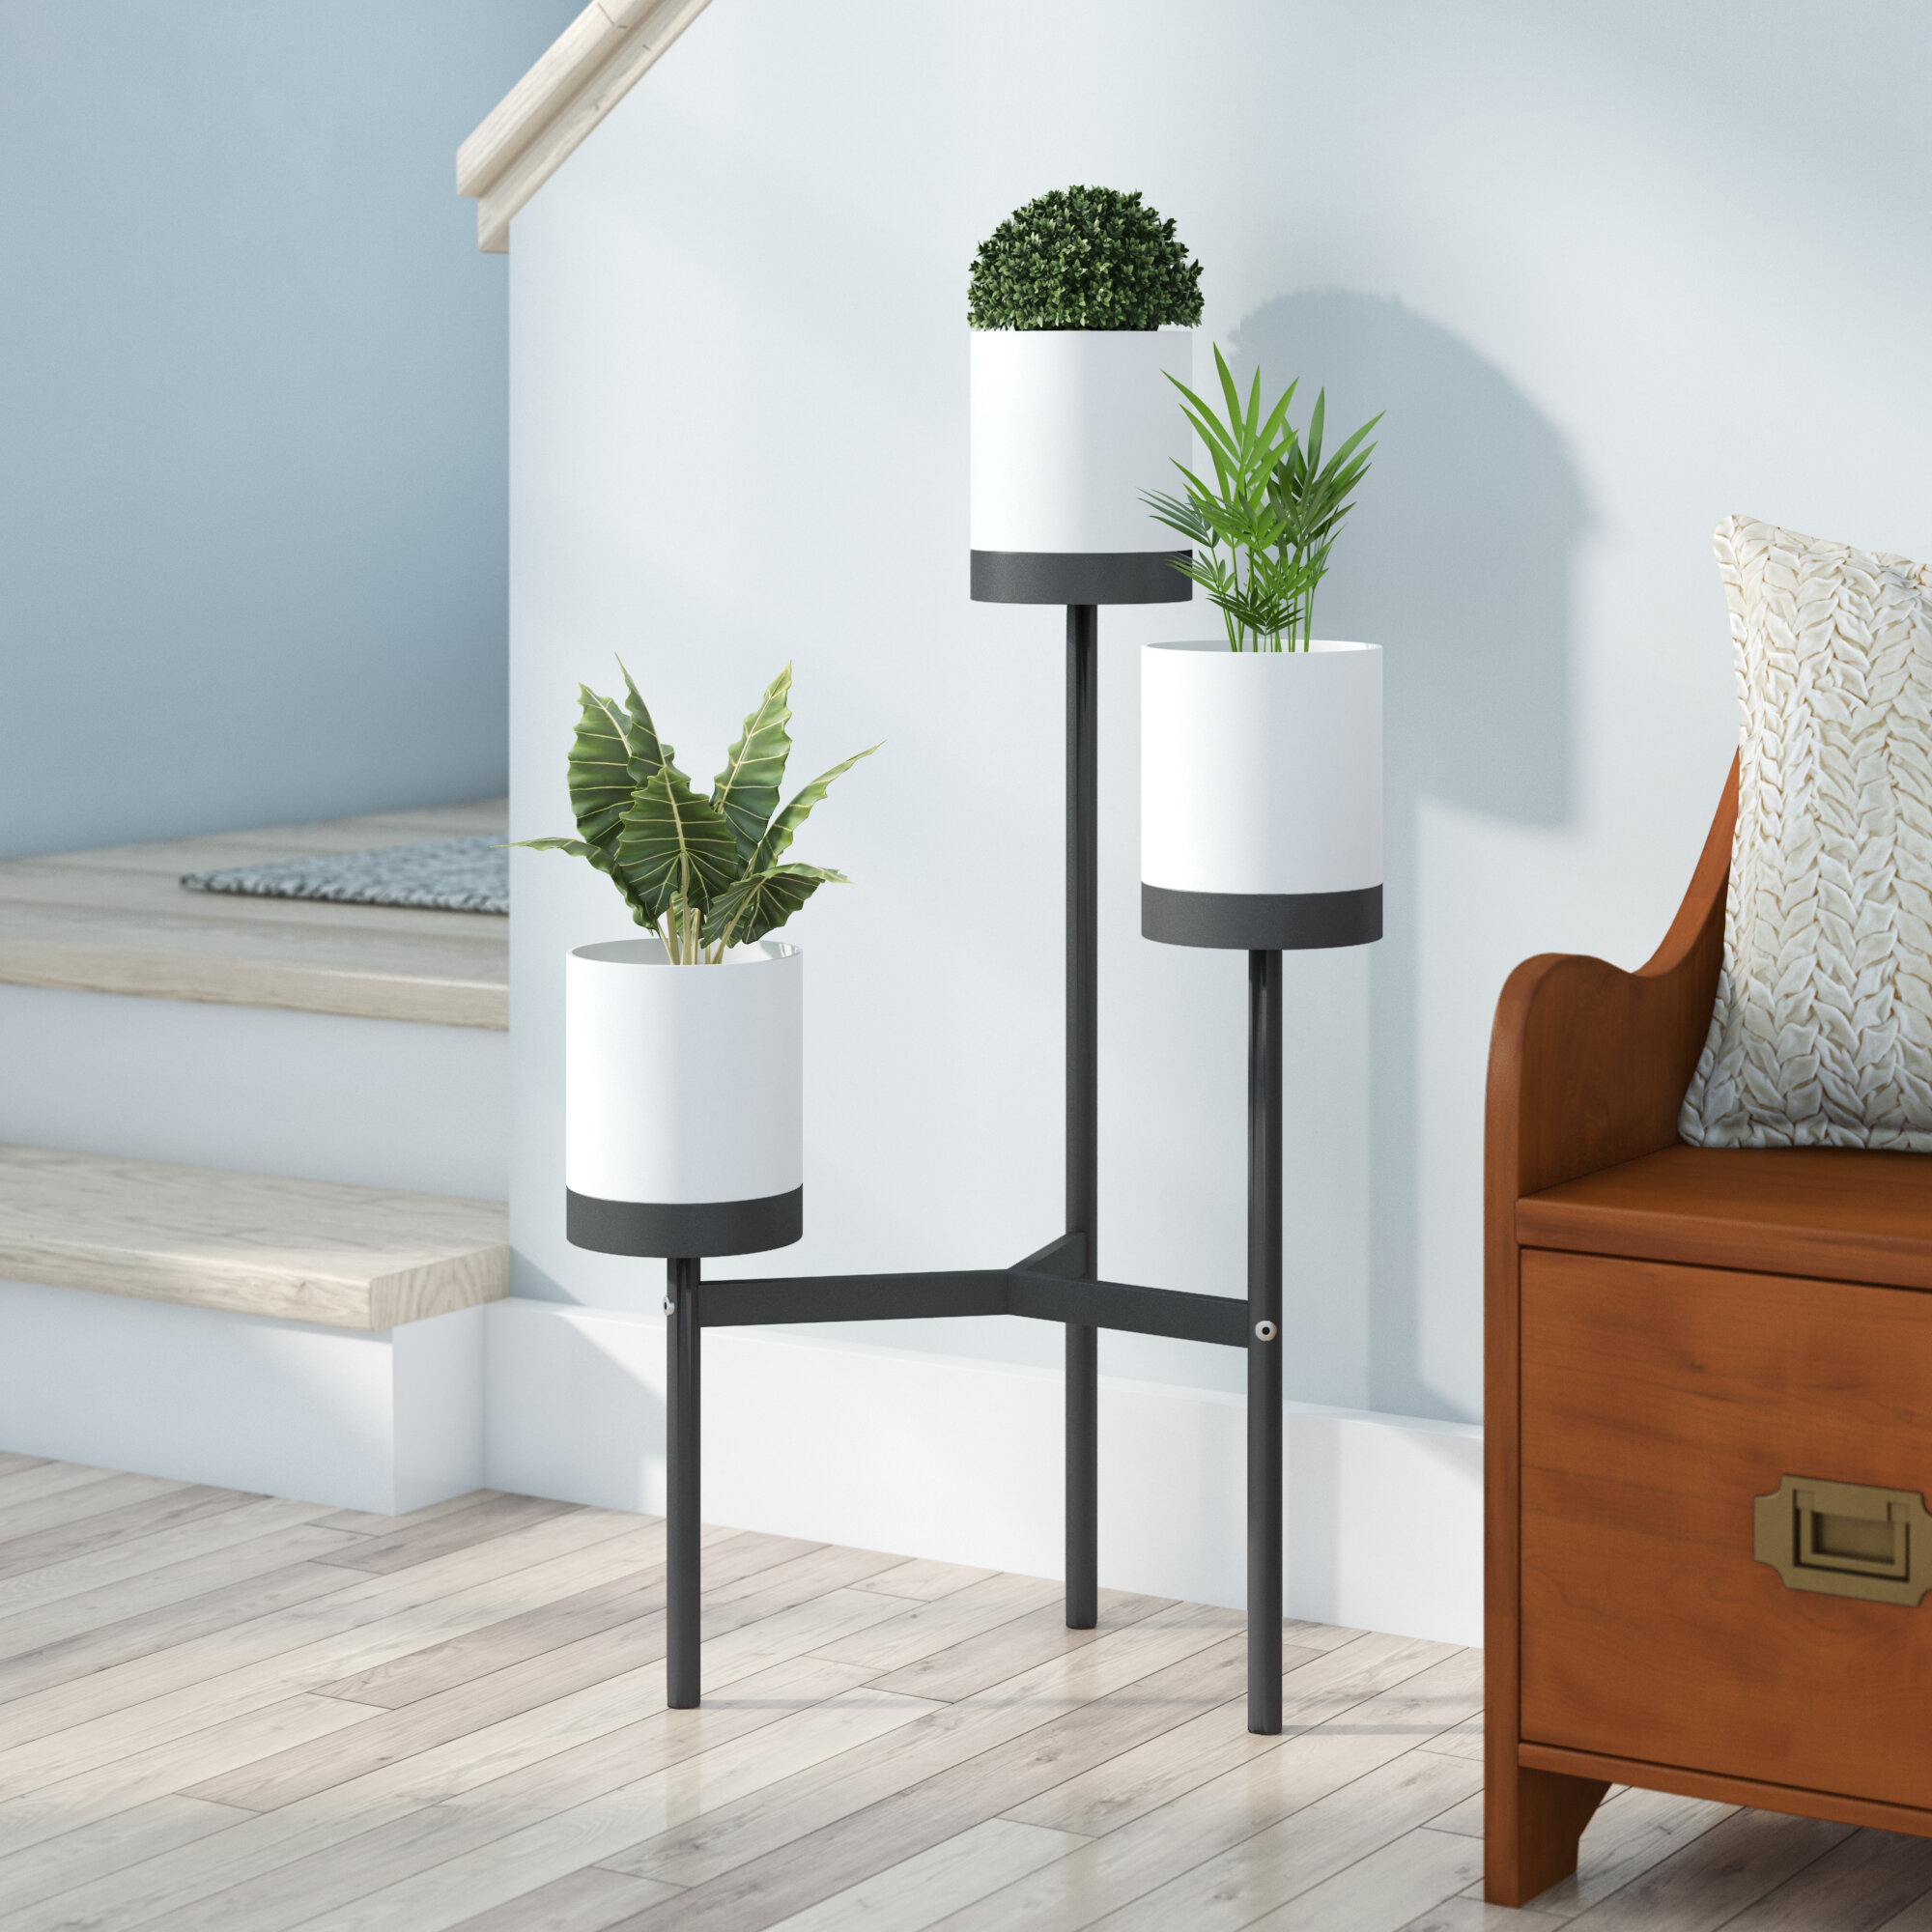 Latitude Run Ezio Multi Tiered Plant Stand Reviews Wayfair